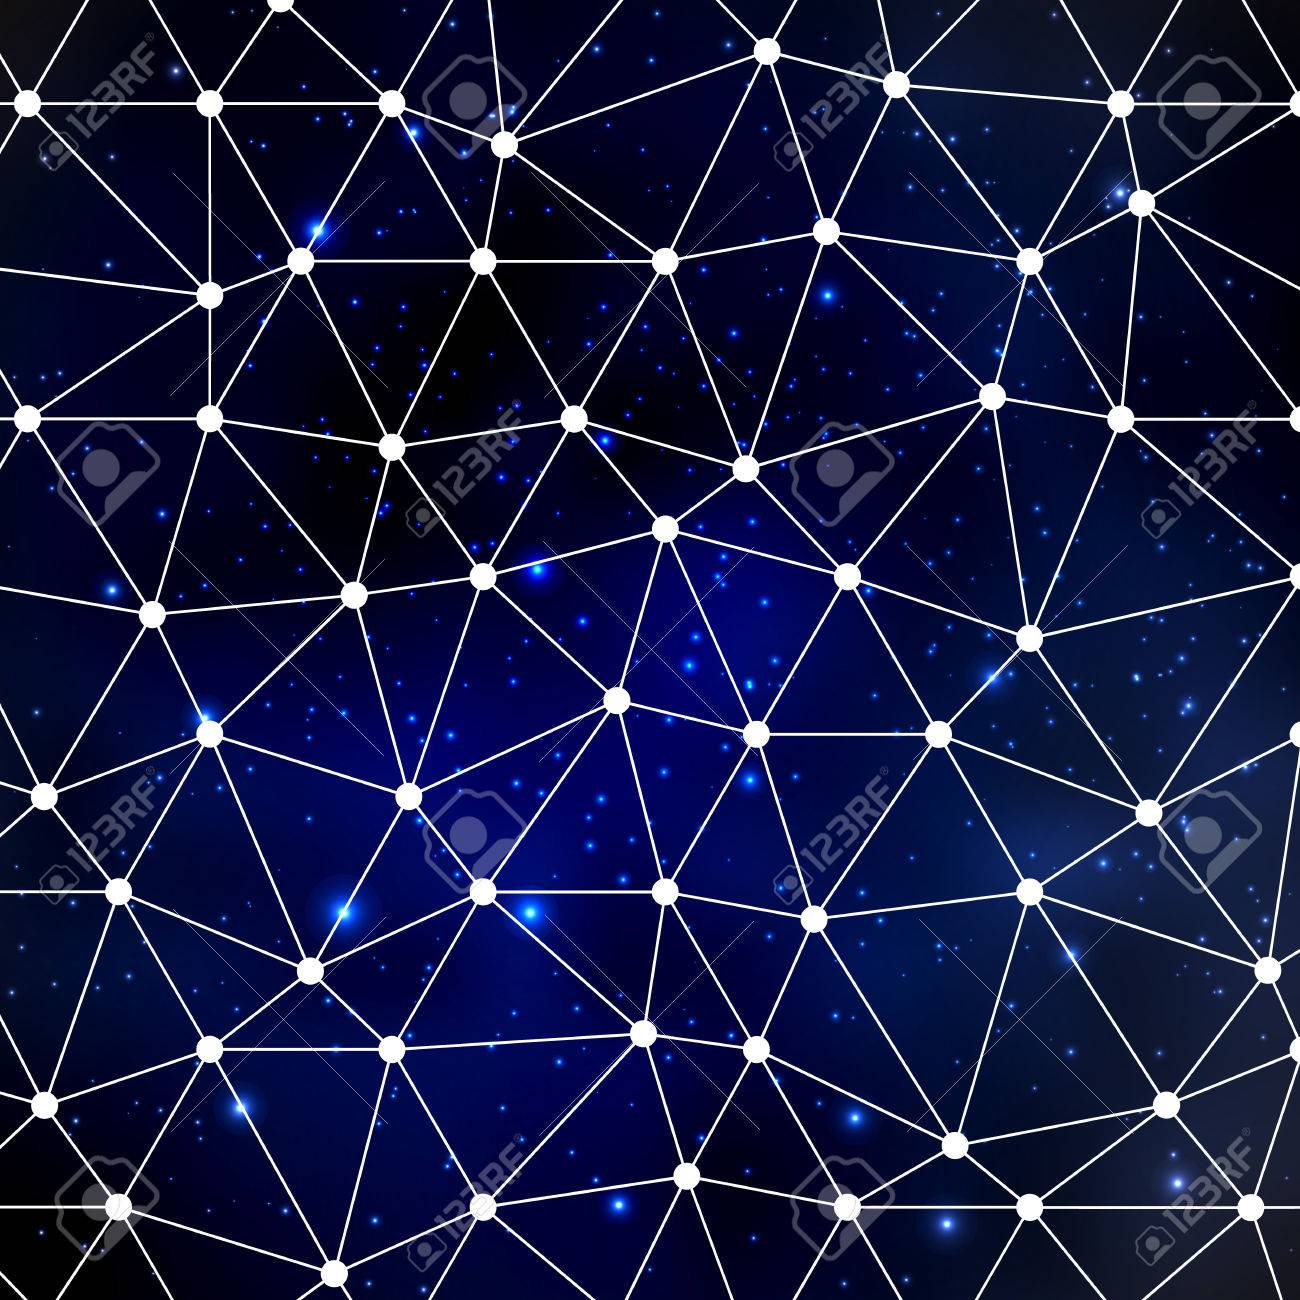 abstract cosmos background with stars and white triangle grid